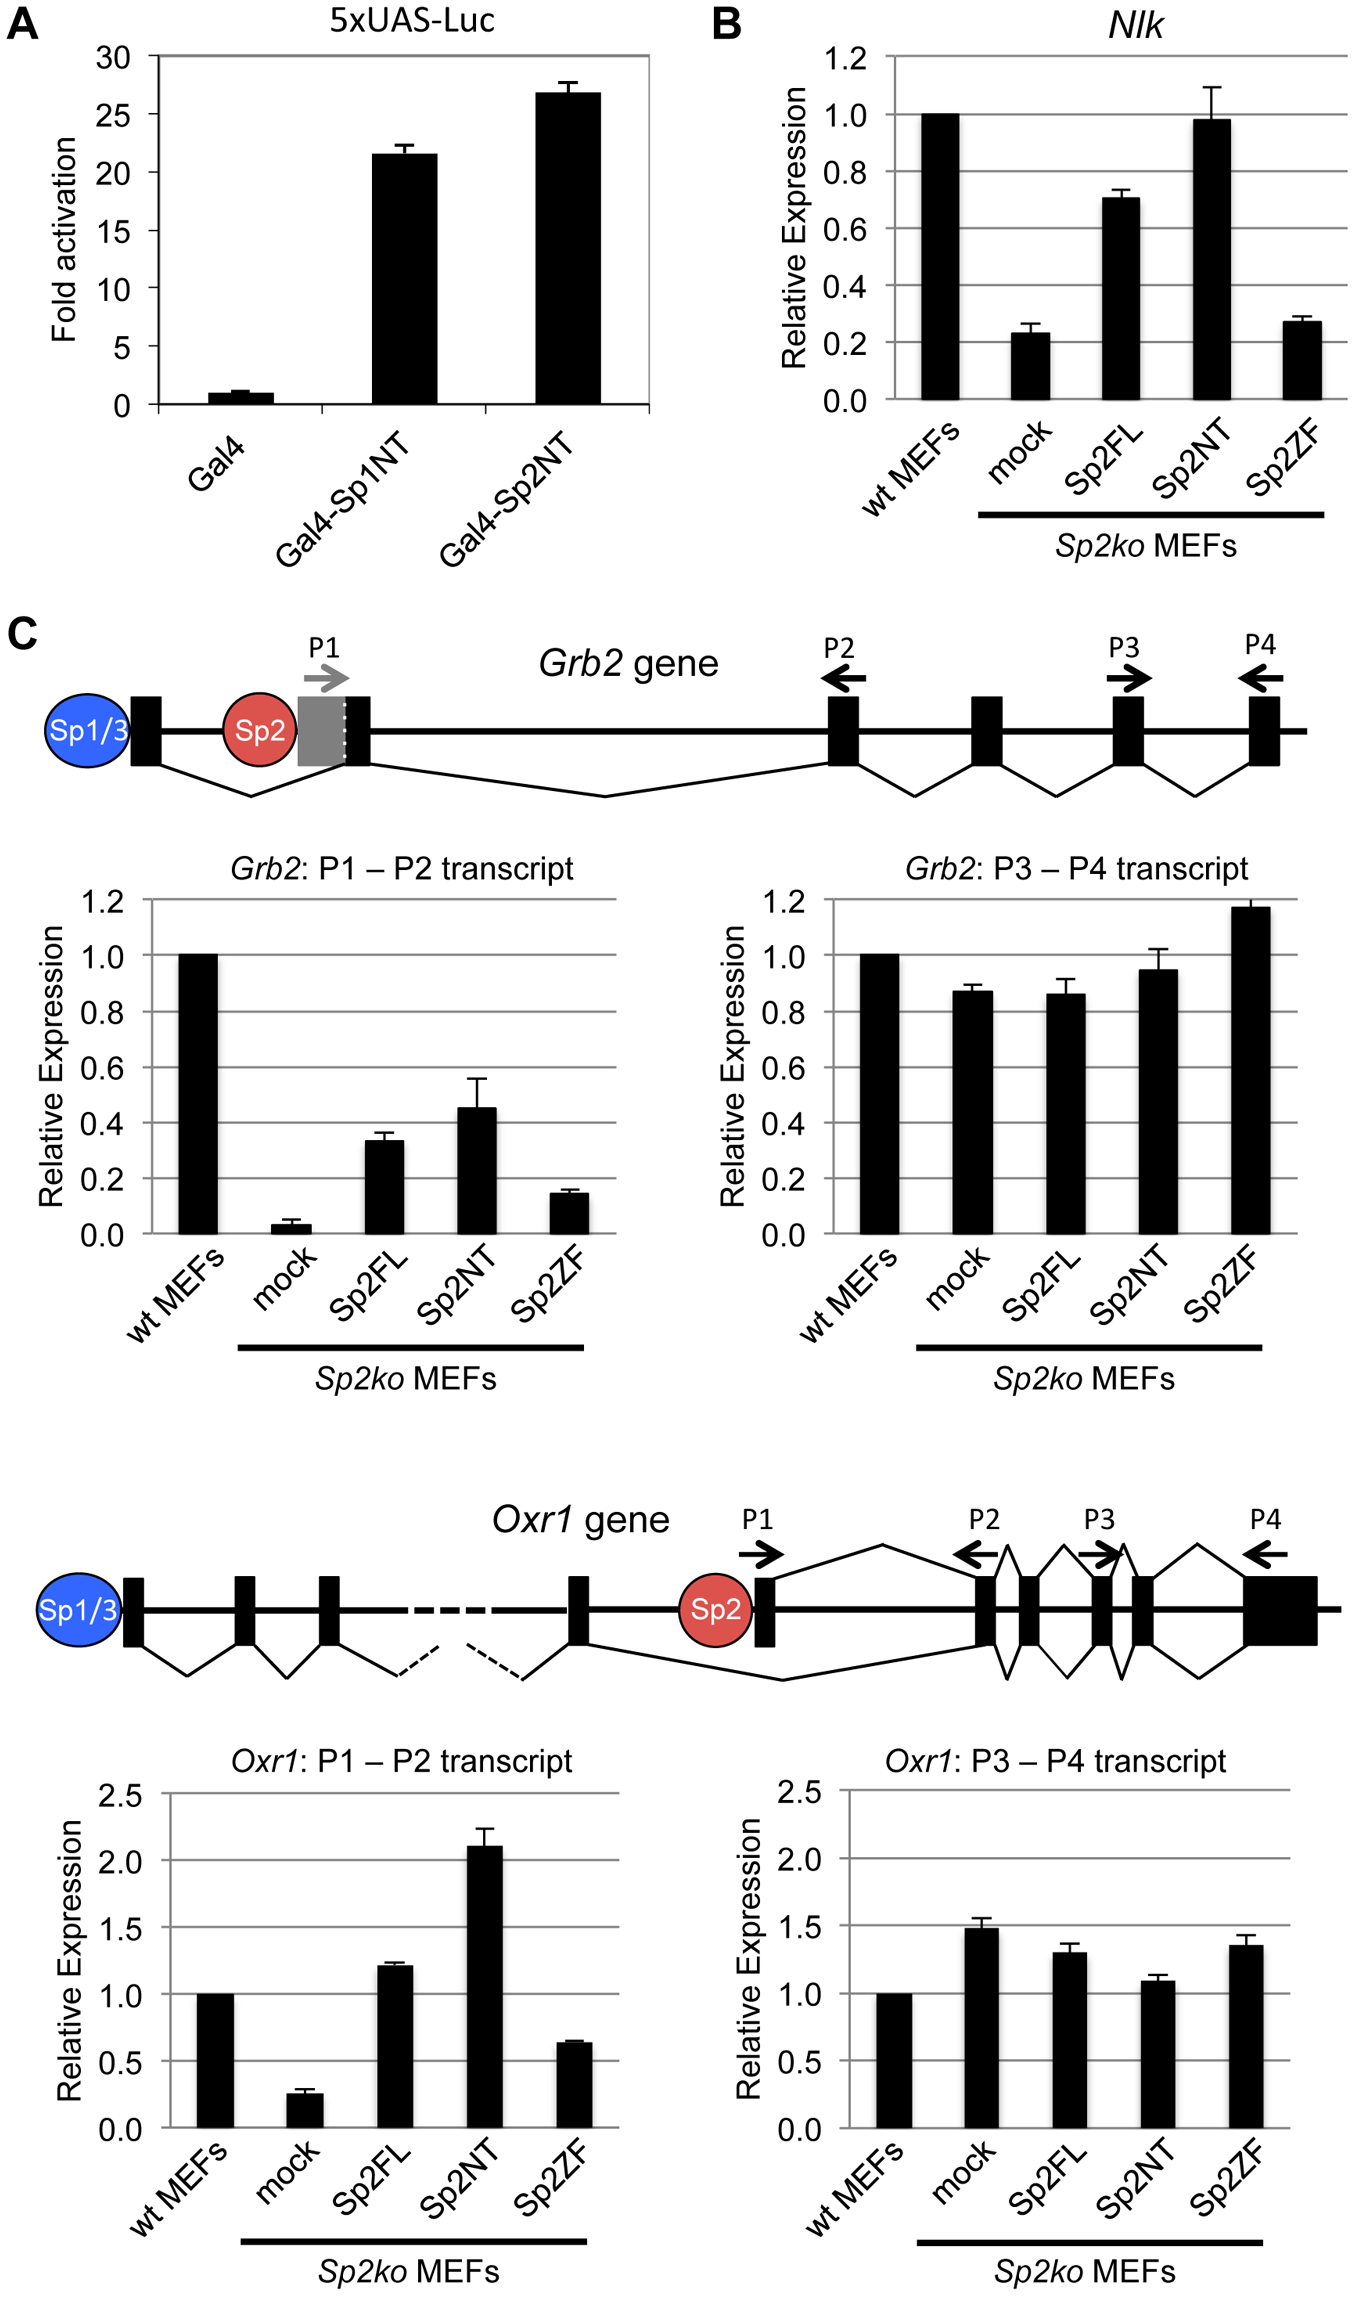 The N-terminal domain of Sp2 can rescue target gene expression.